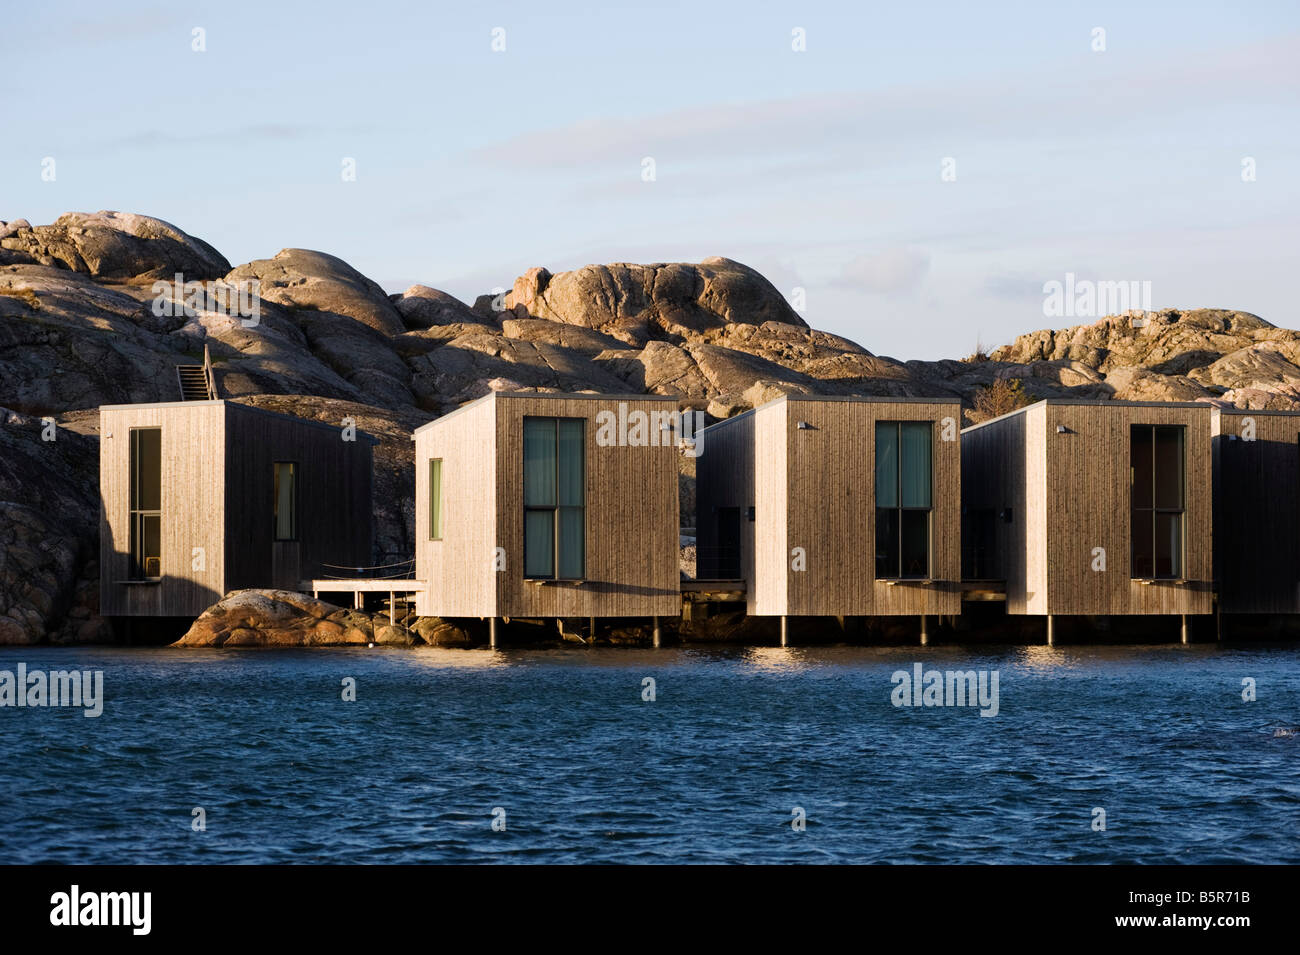 Modern Opposite Modern Wooden Vacation Huts Builtthe Sea Opposite The Nordic